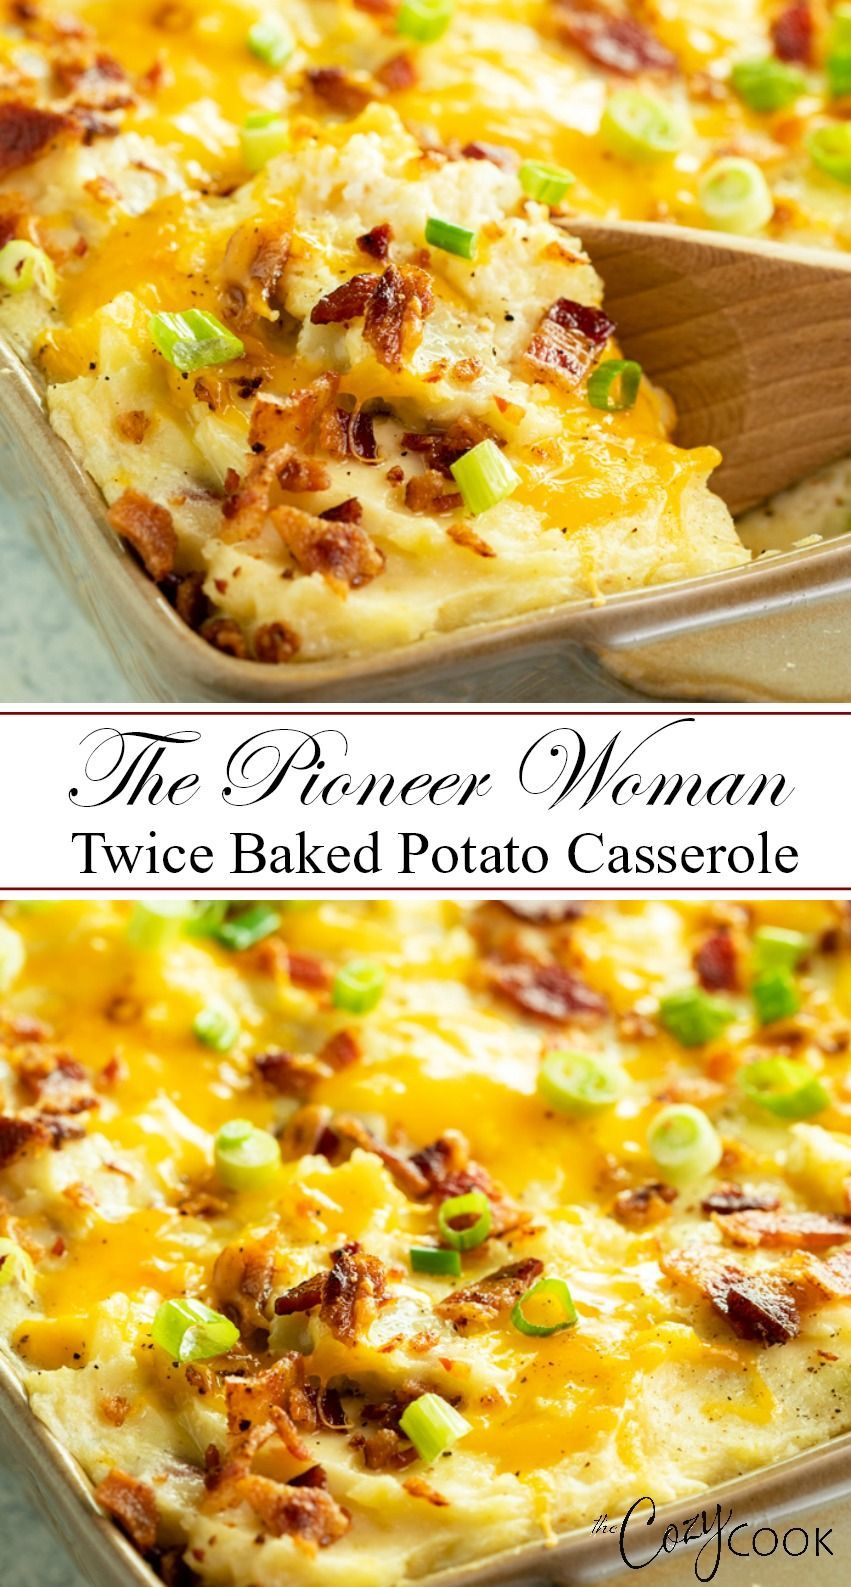 This easy Twice Baked Potato Casserole from The Pioneer Woman is a perfect side dish, easy to make